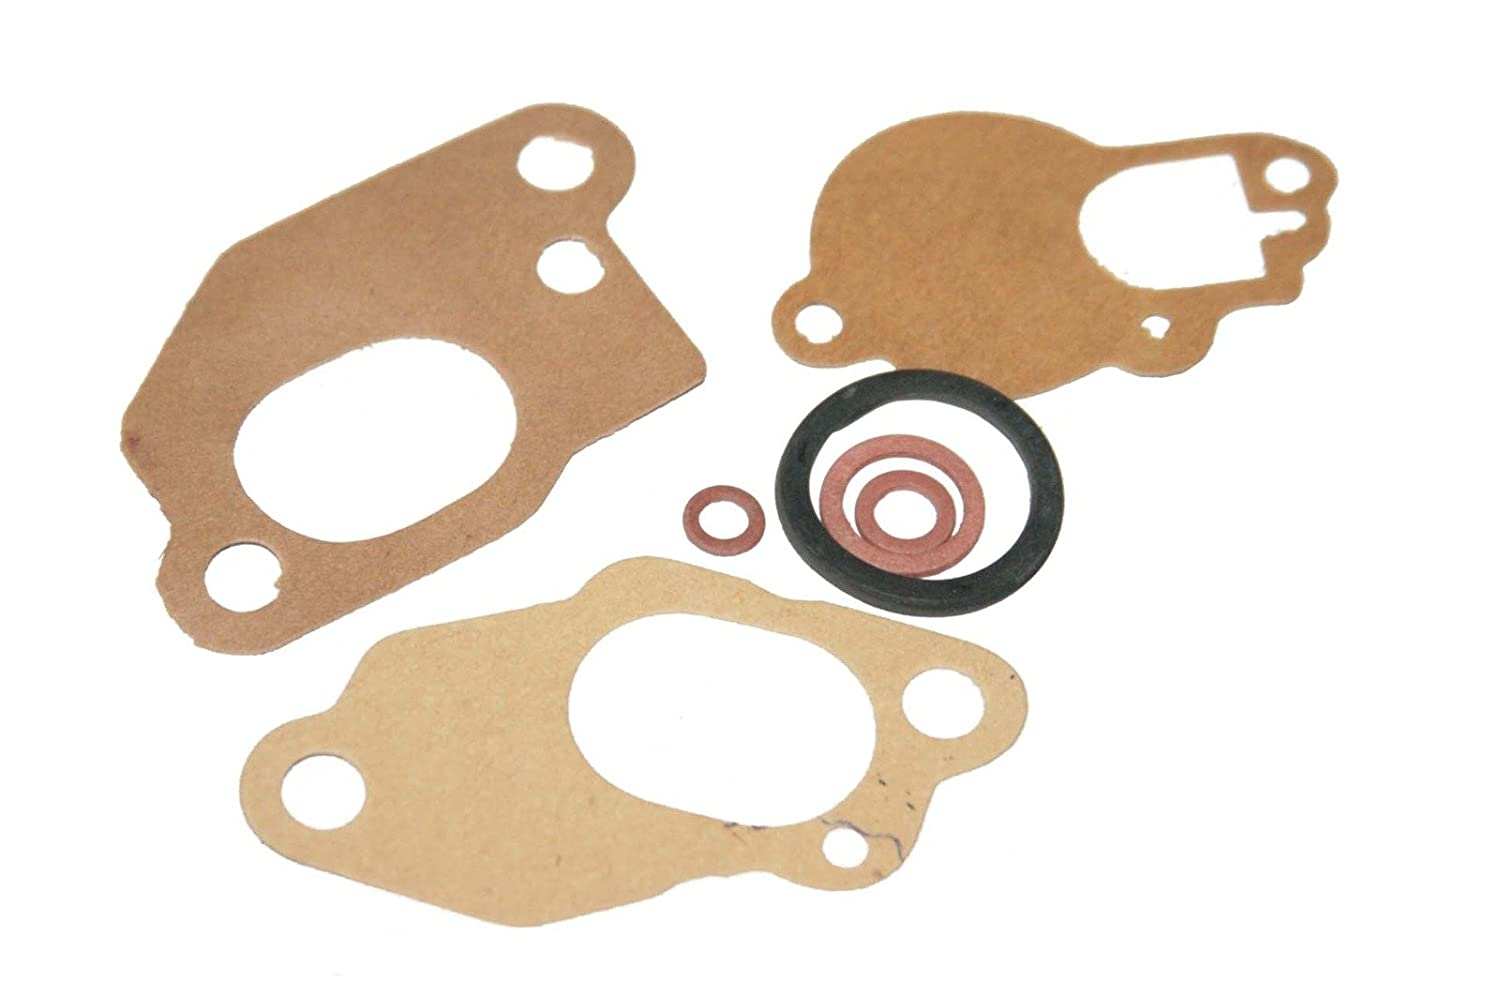 Enfield County Gasket Washer Set For Spaco Si Carburettor Piaggio Vespa LML Scooters